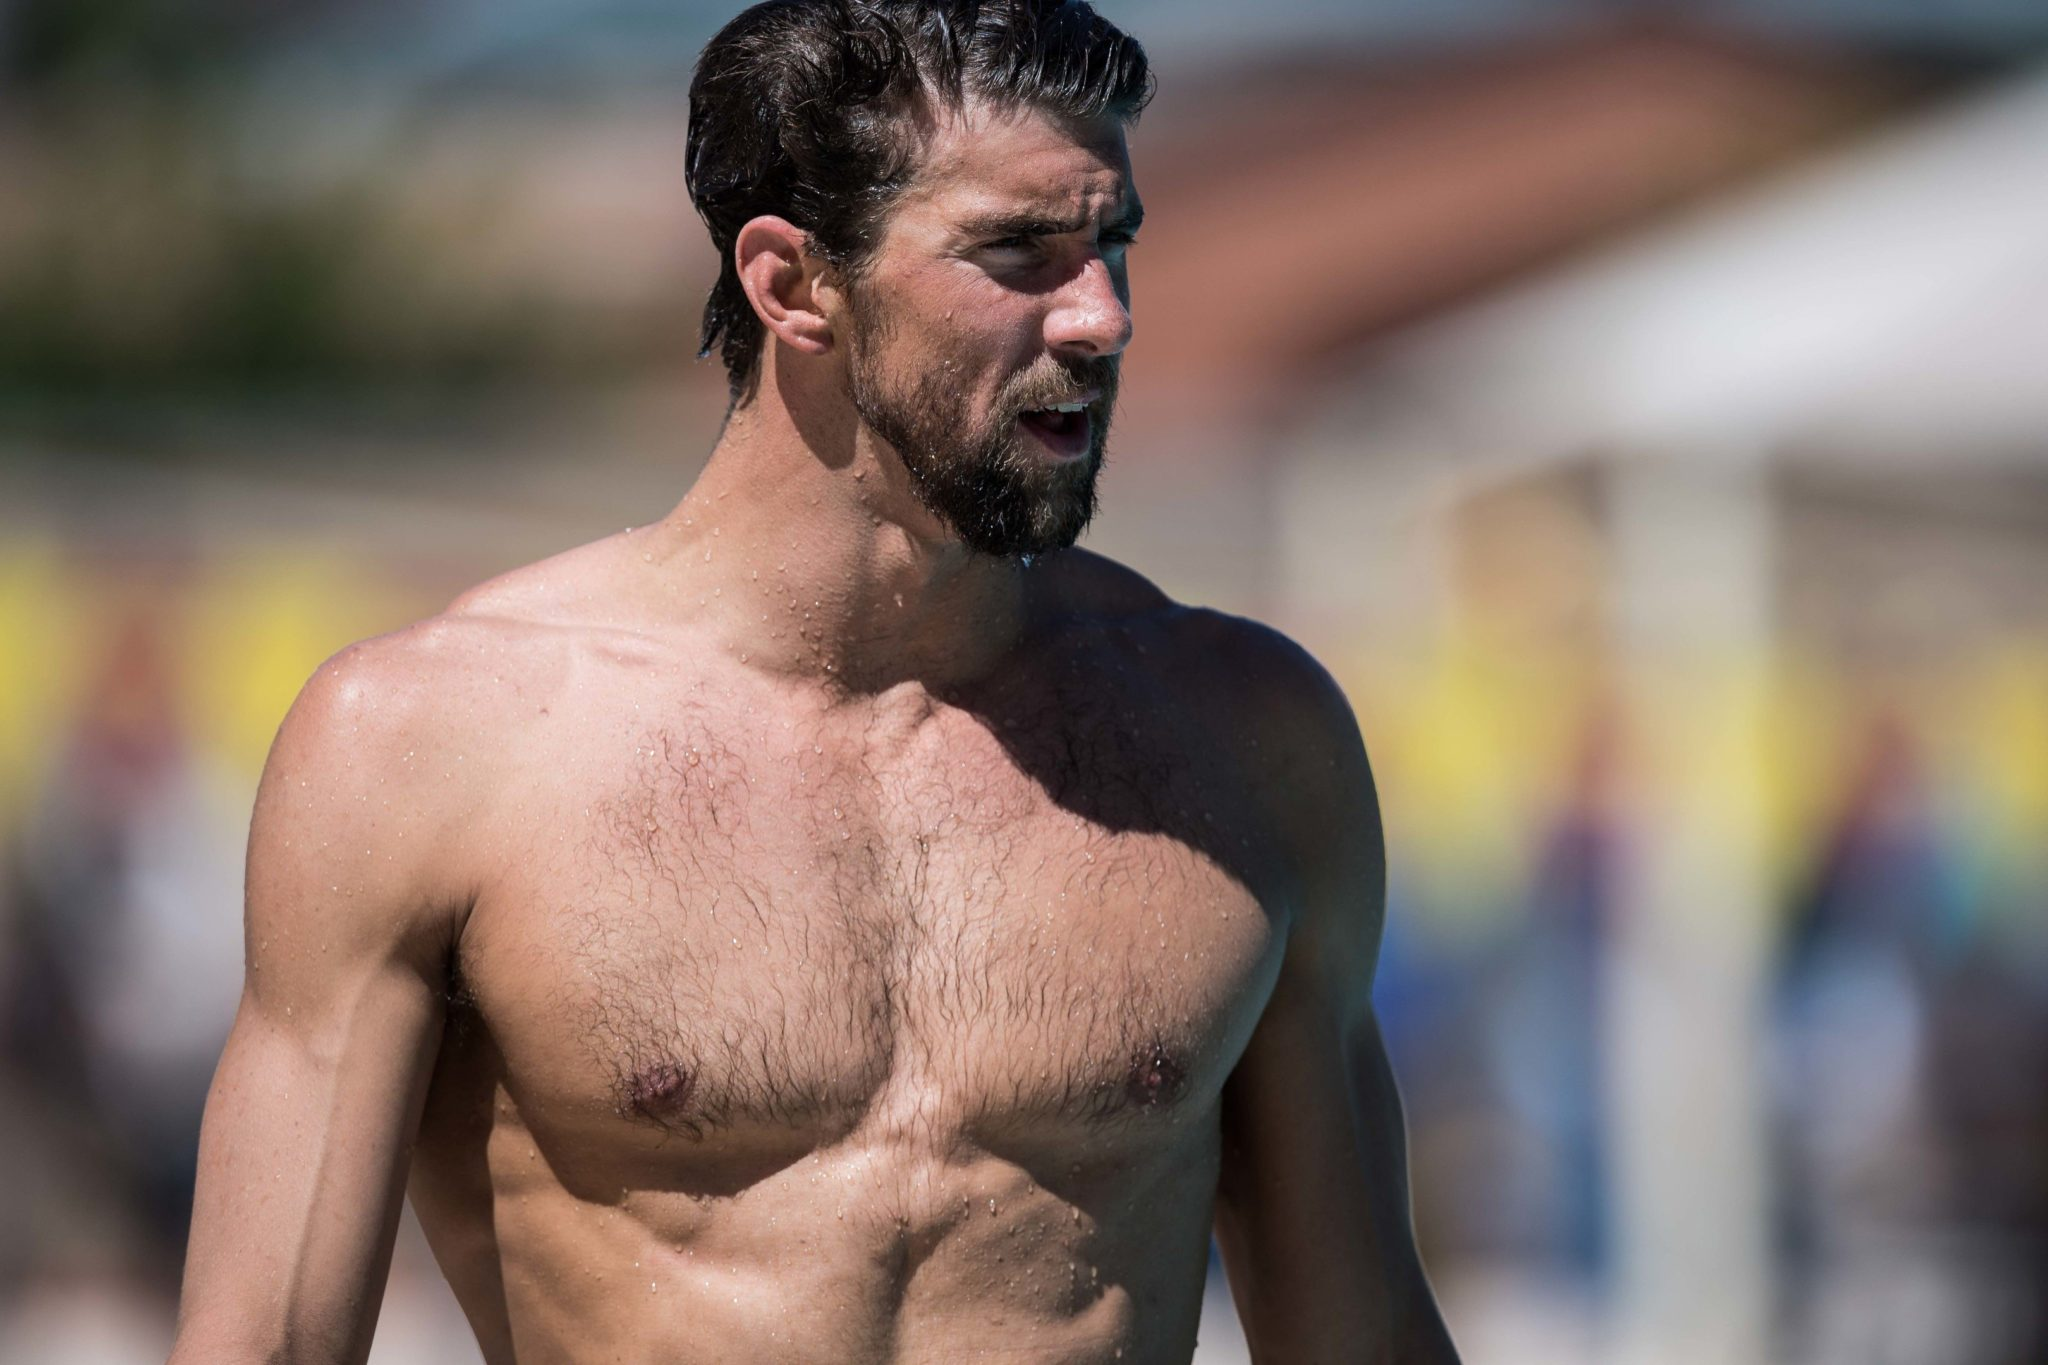 Michael Phelps Hairy Chest - Other - Video Xxx-7767